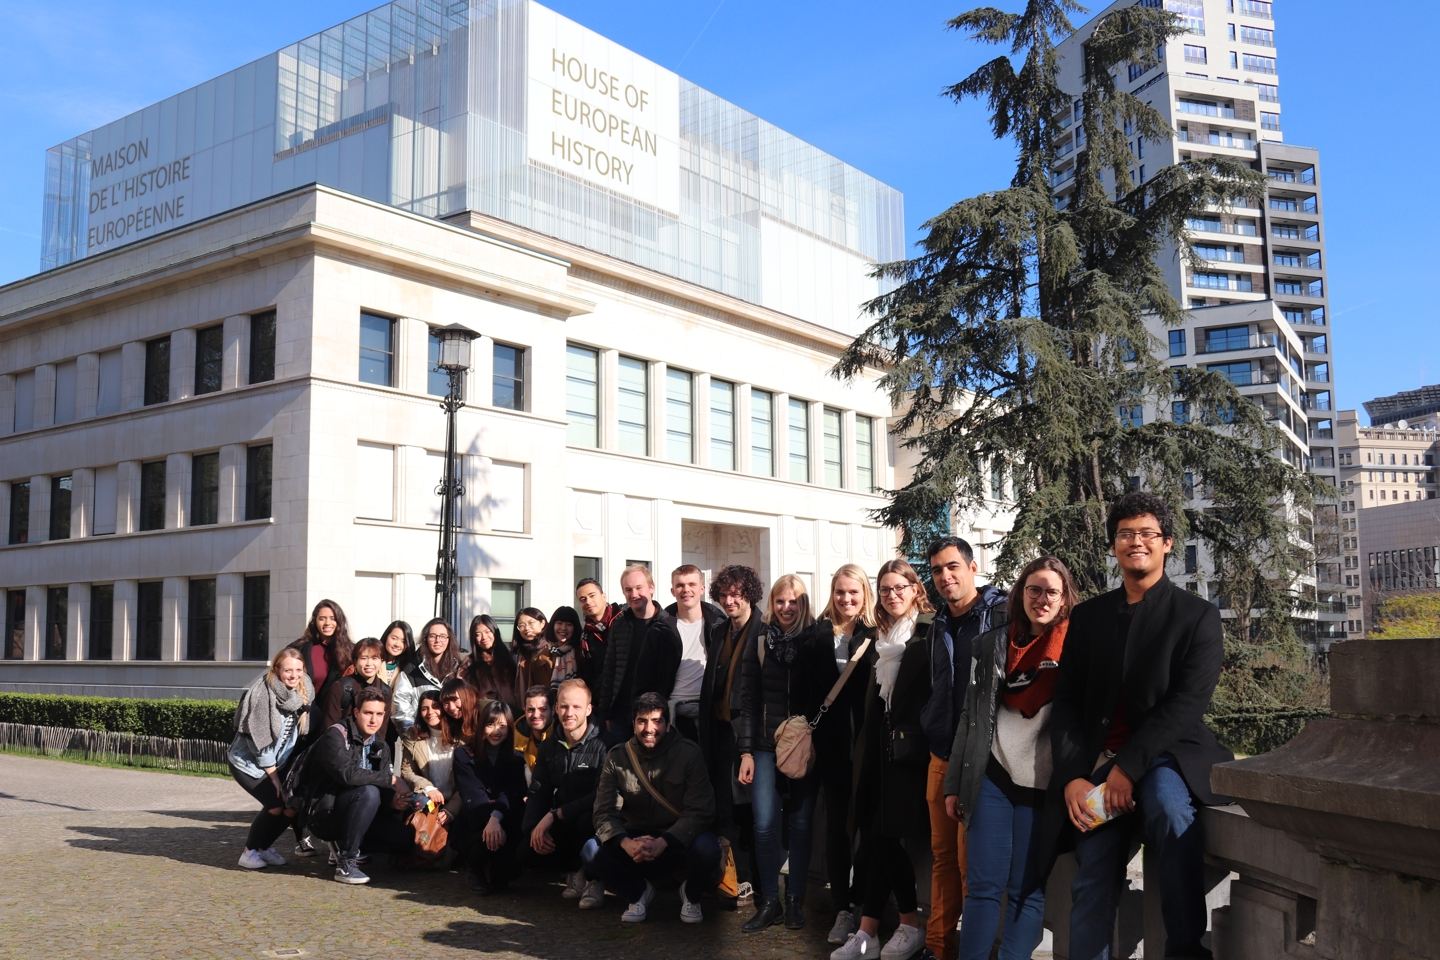 Group photo in front of the House of European History